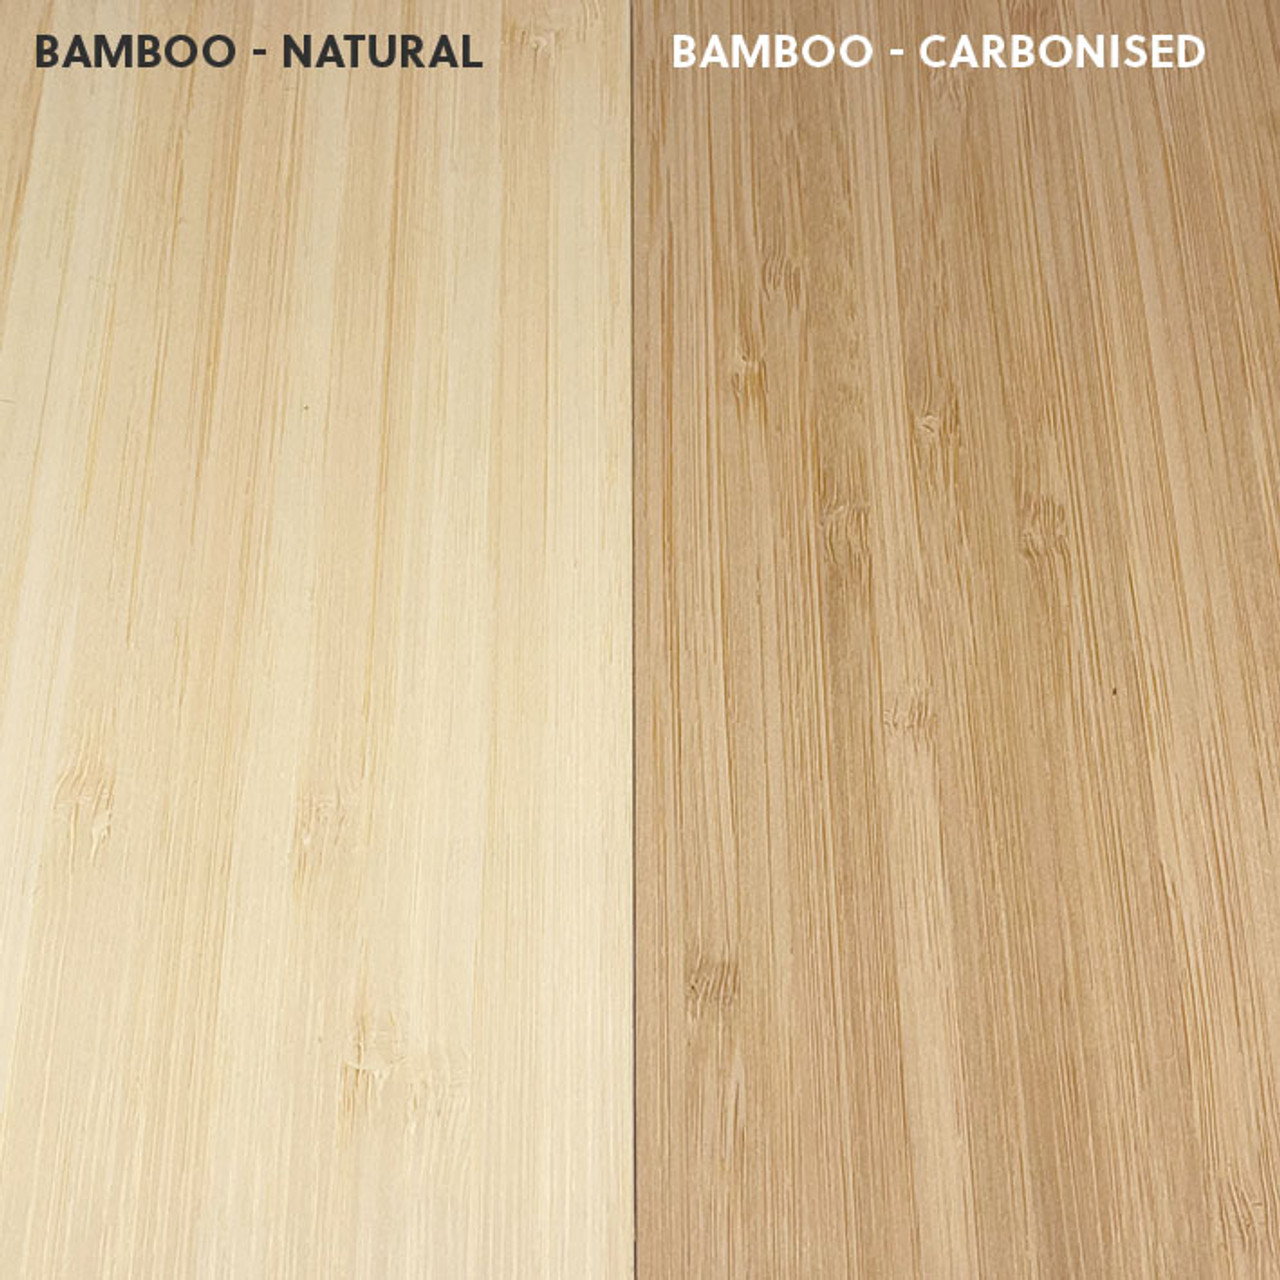 Colour differences between natural bamboo and carbonised bamboo